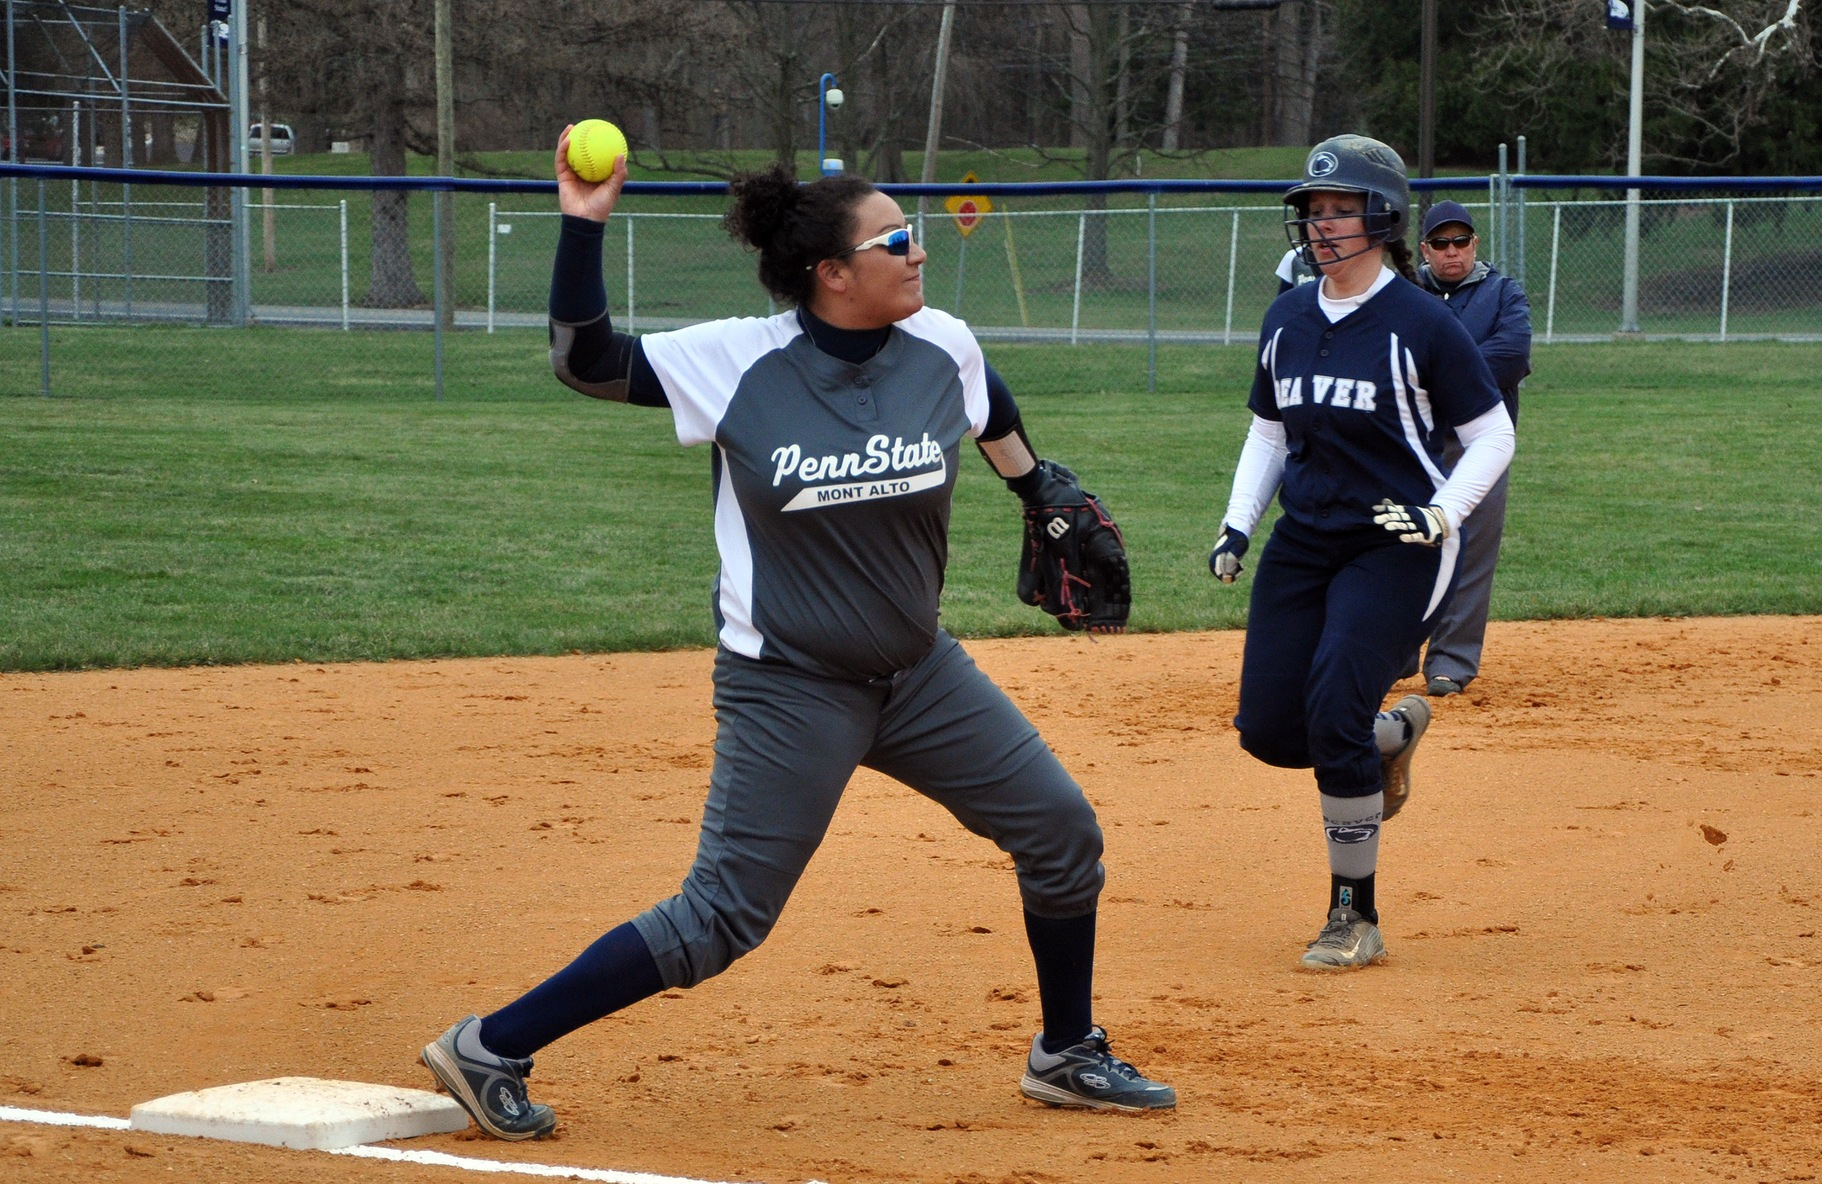 Lions Unable to Get Timely Hits and Drop Two Games to PSU New Kensington